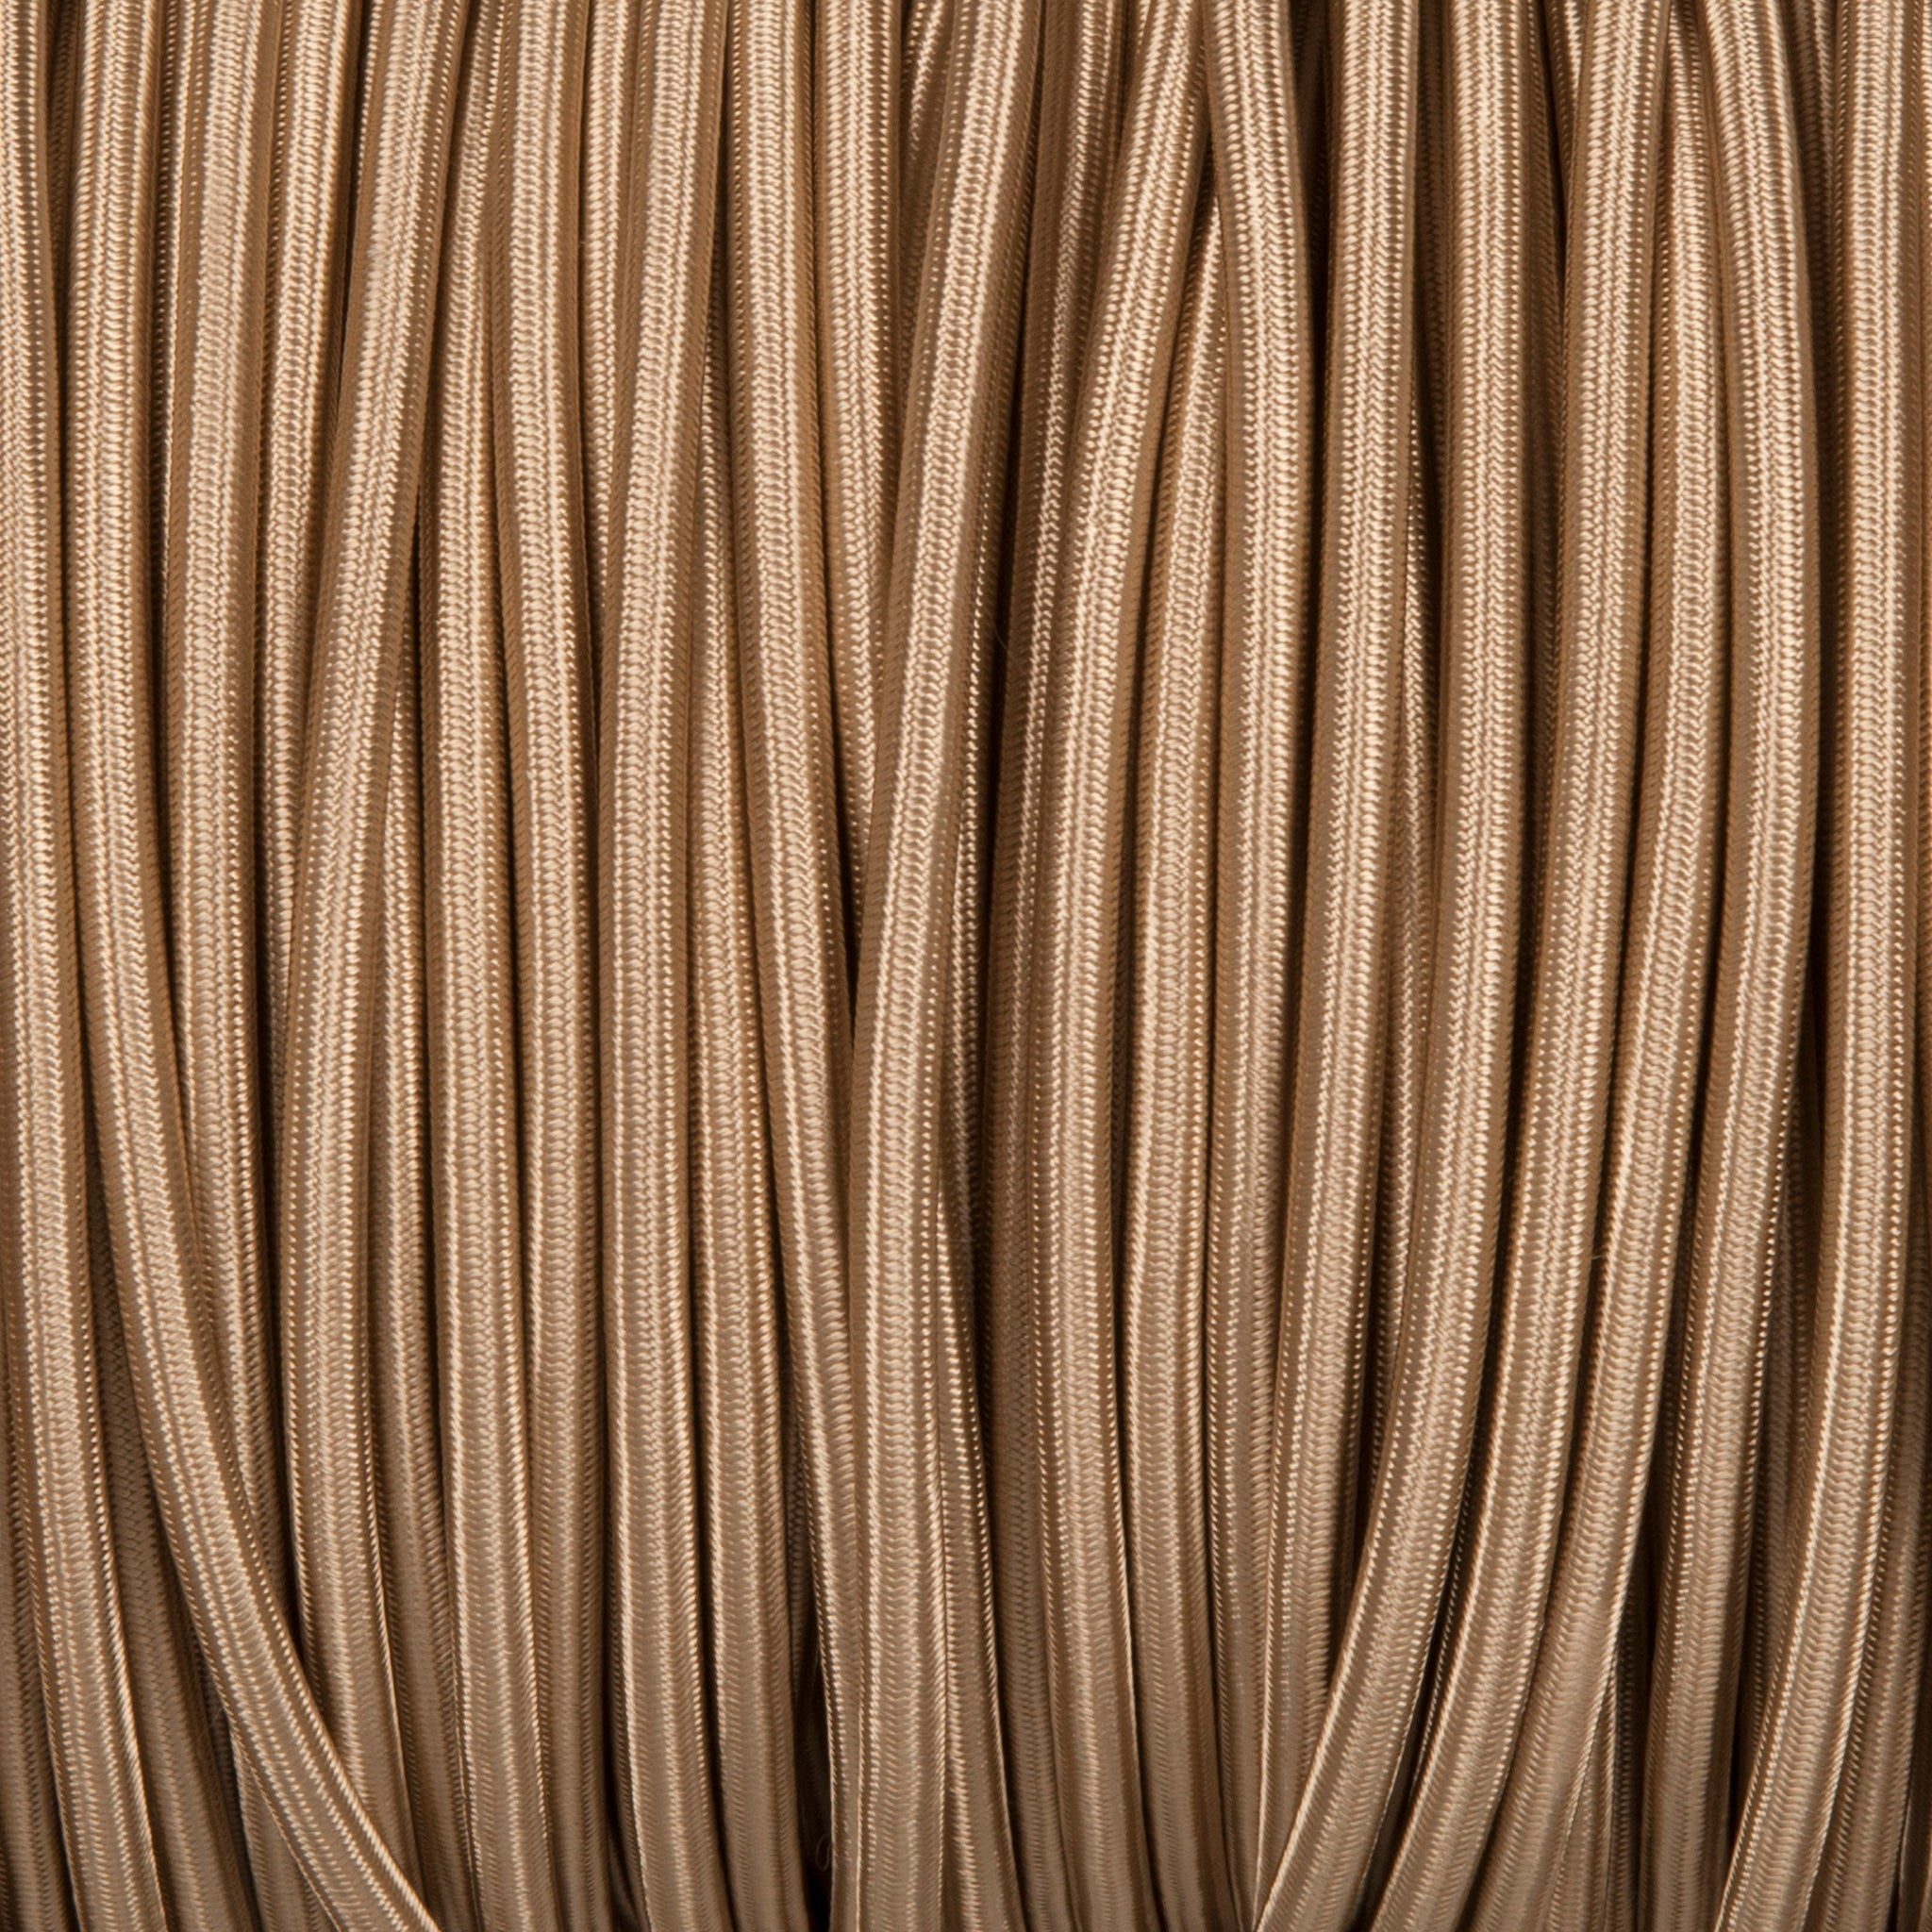 Round lighting cable - Beige braided fabric